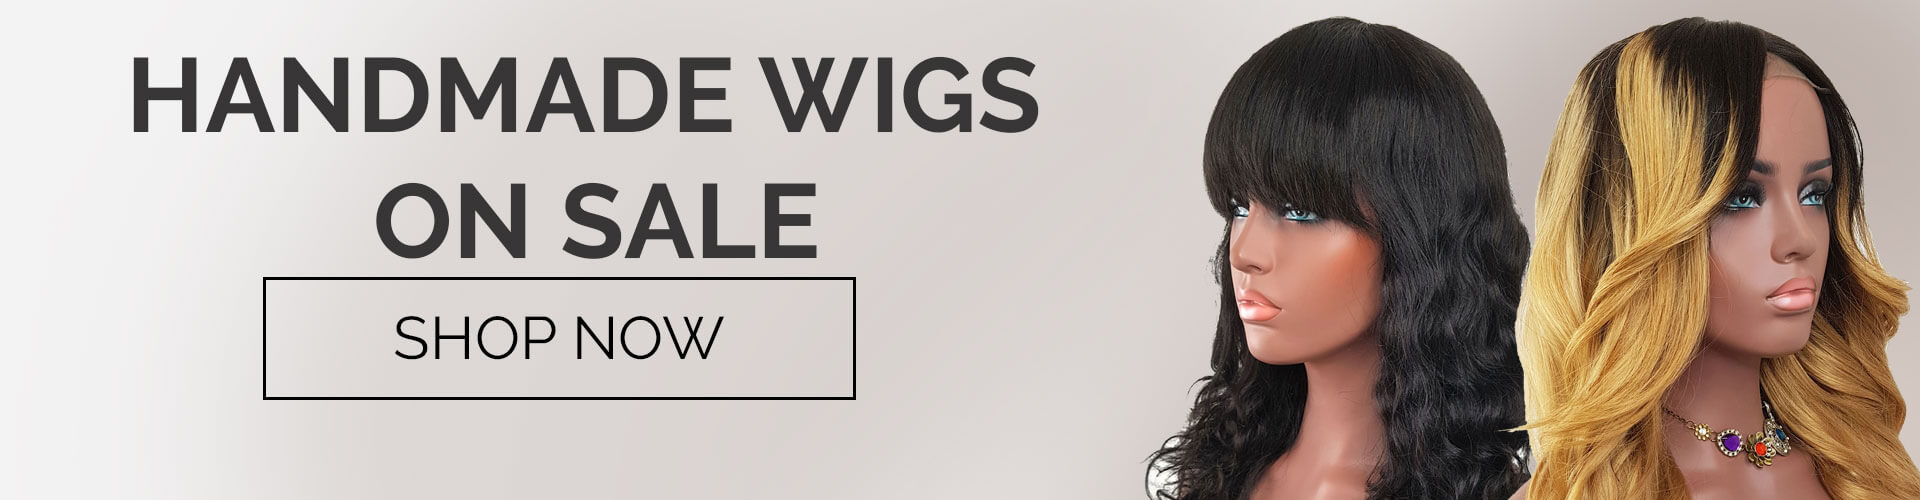 handmade-wigs-on-sale